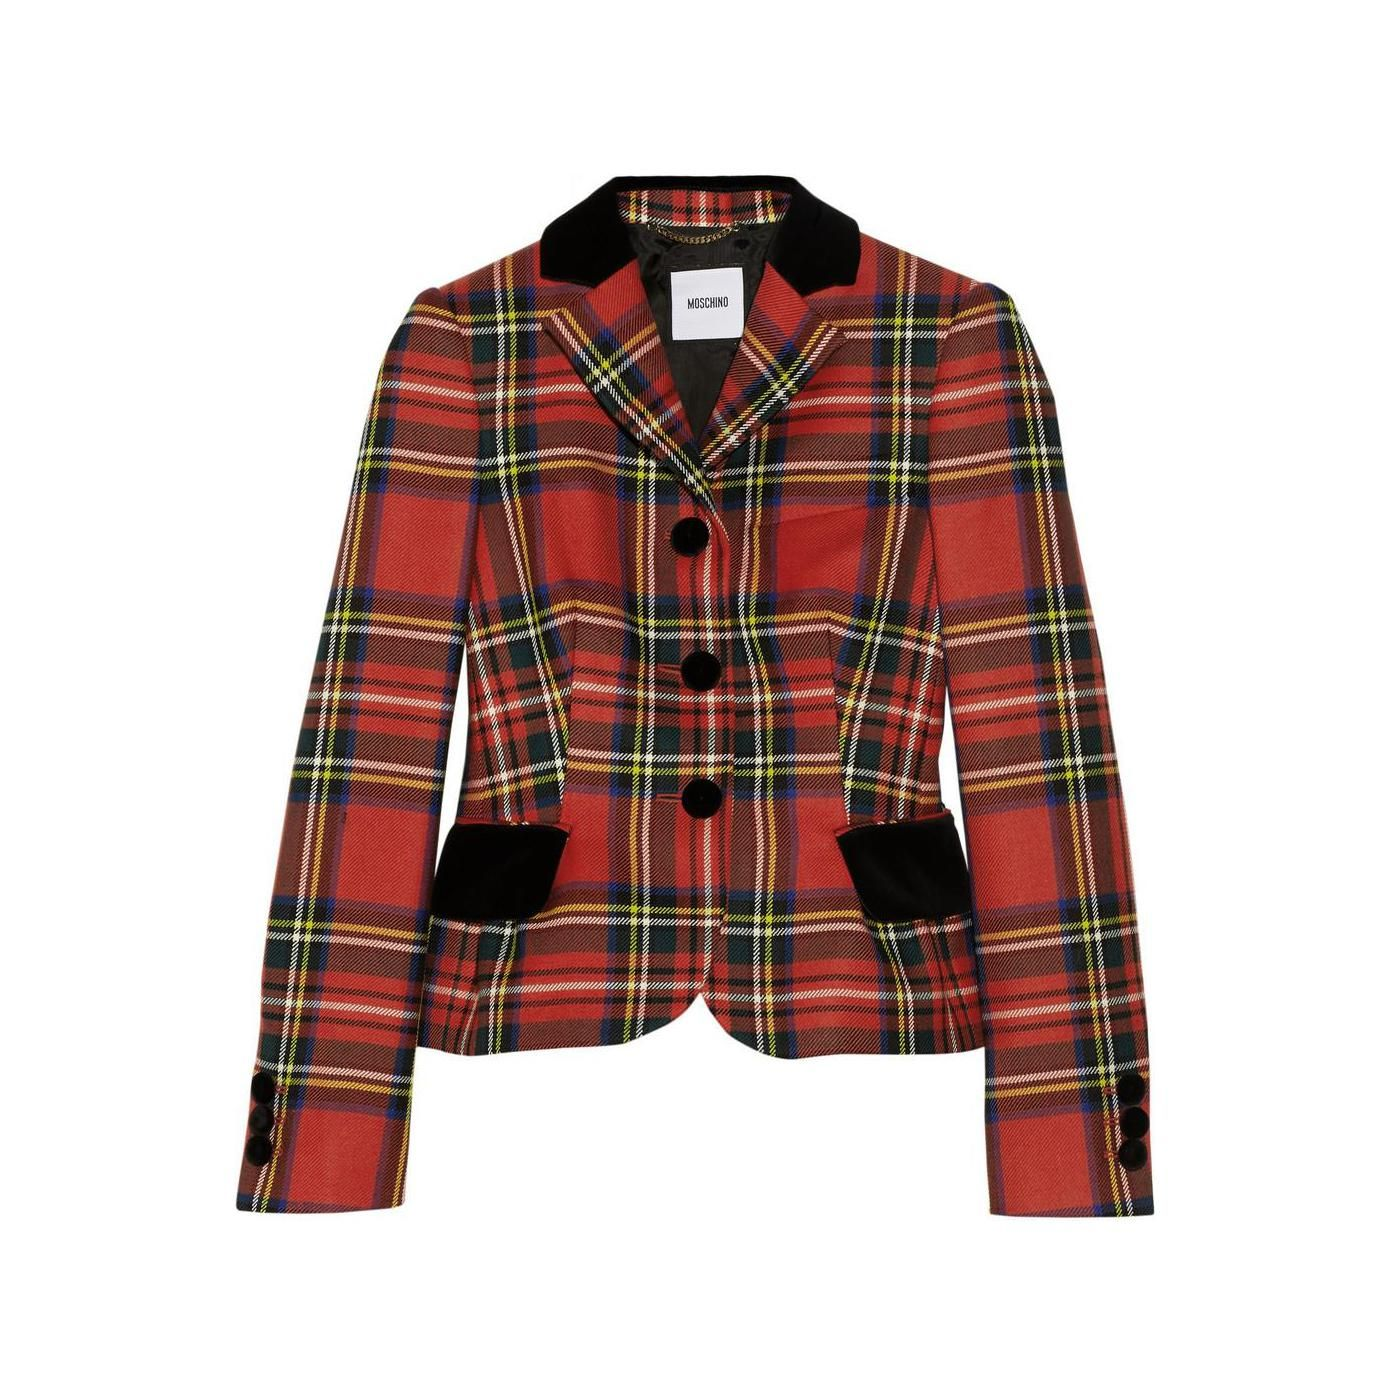 Moschino women's embroidered velvettrimmed tartan wool